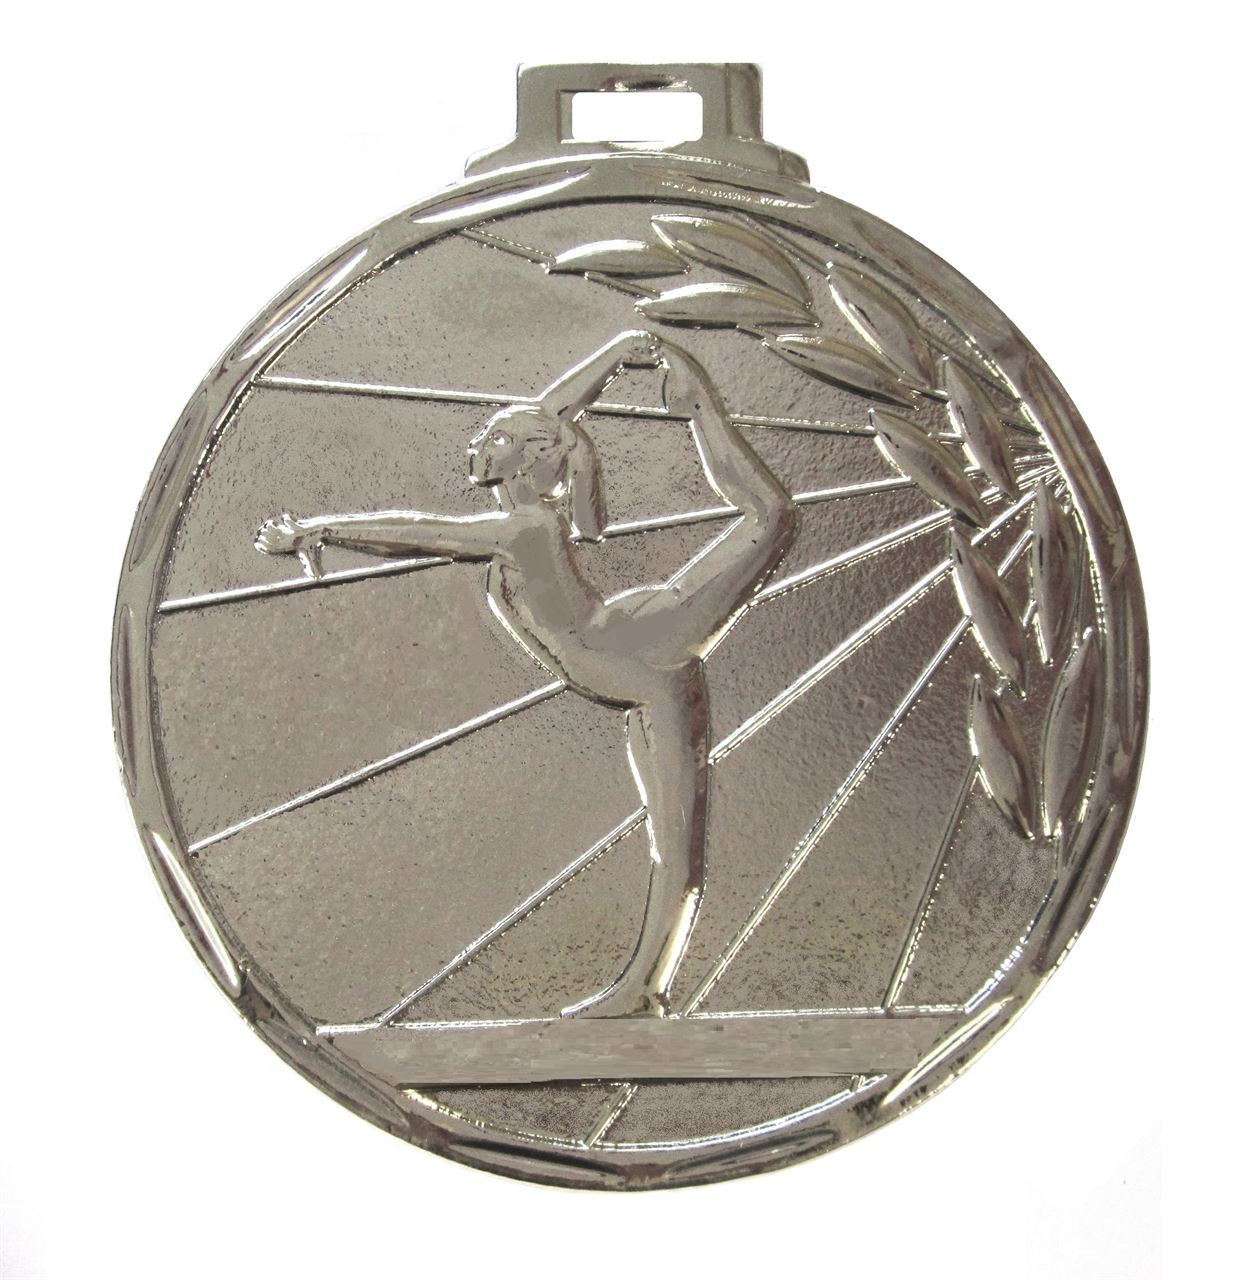 Silver Value Gymnastics Ray Medal (size: 50mm) - 7901